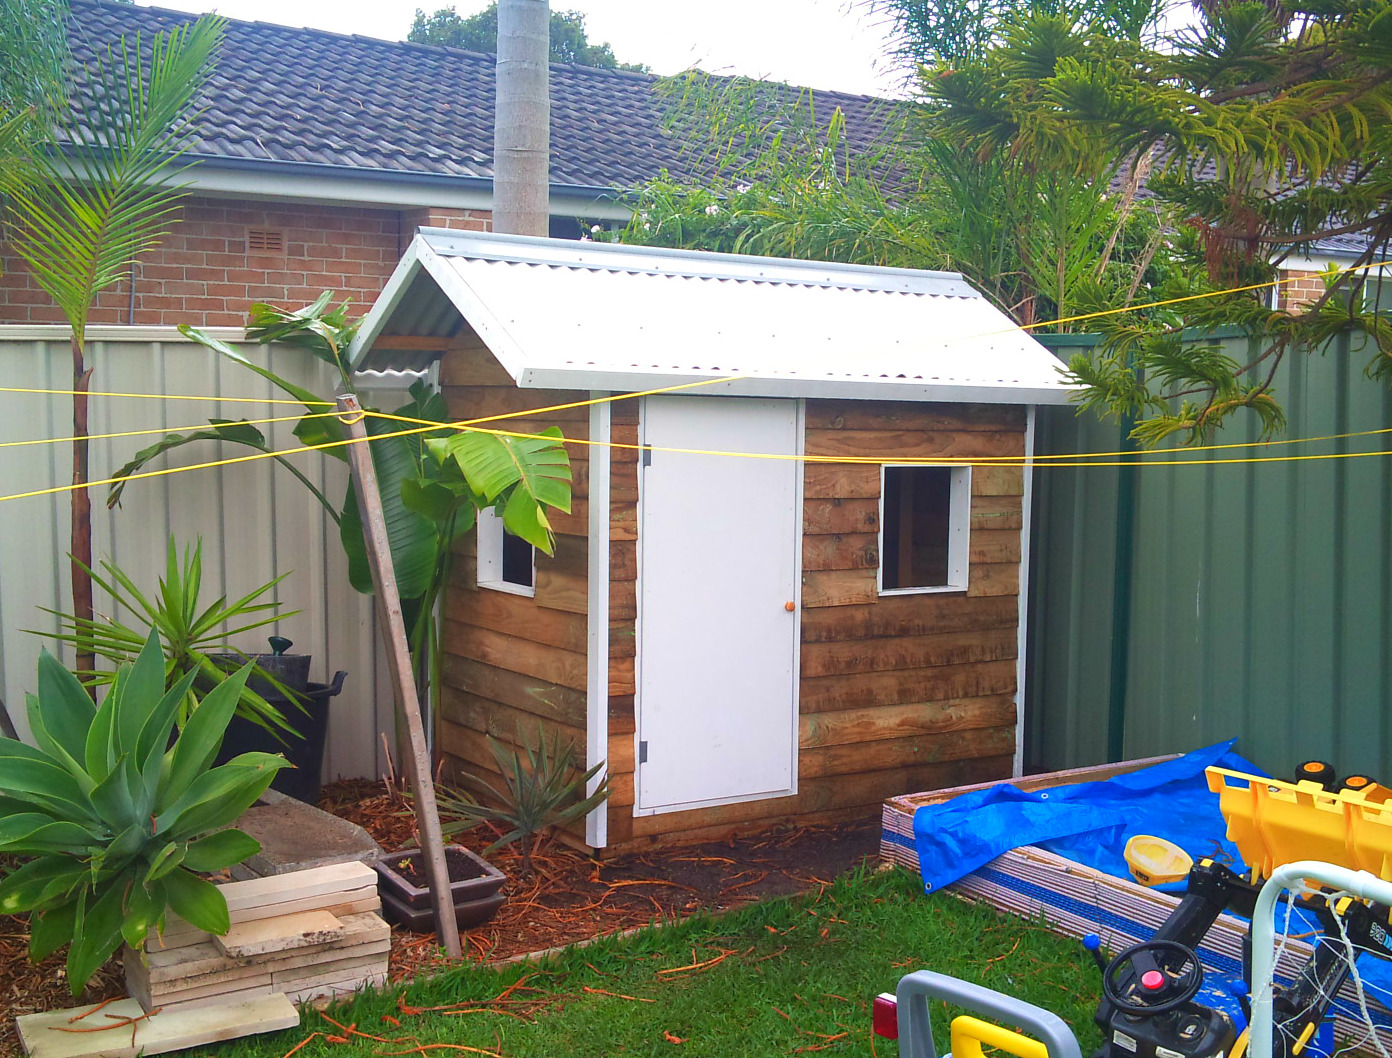 cubby house 1.8m x 1.2m, two perspex windows, plywood door, painted trim $910